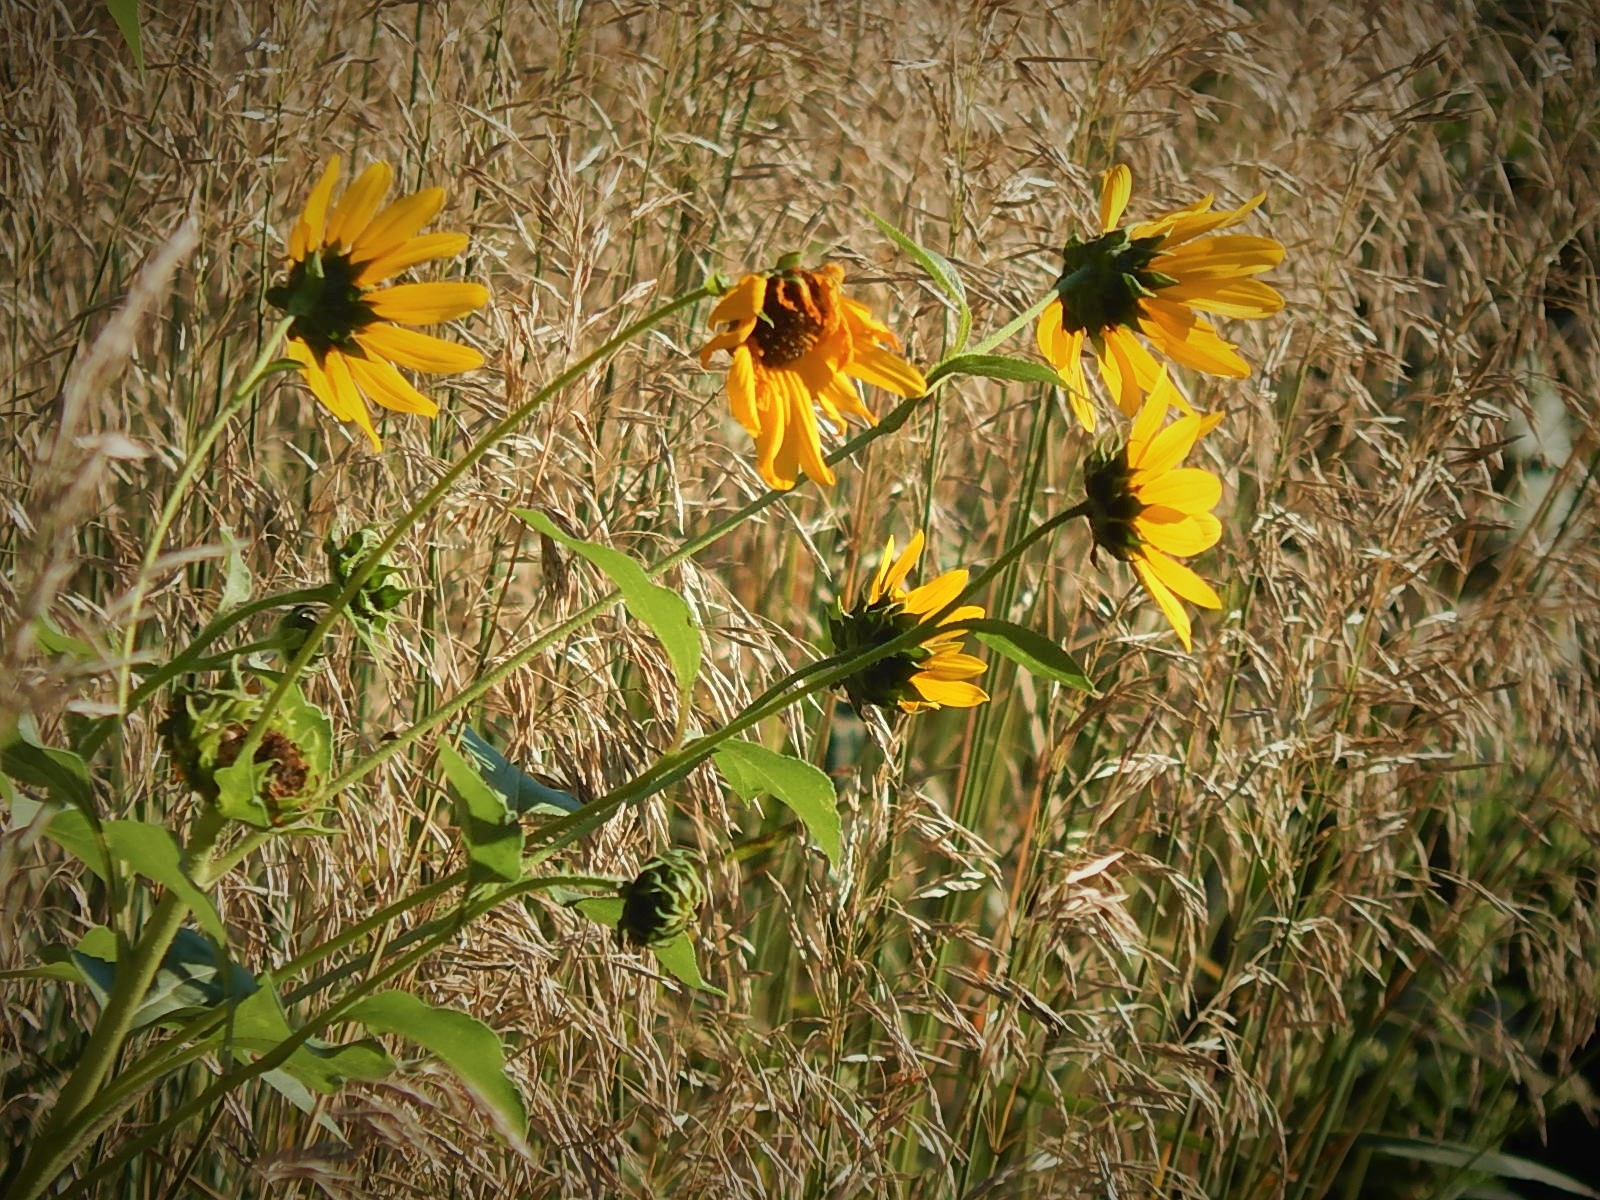 Wild sunflowers by Marsha Furman